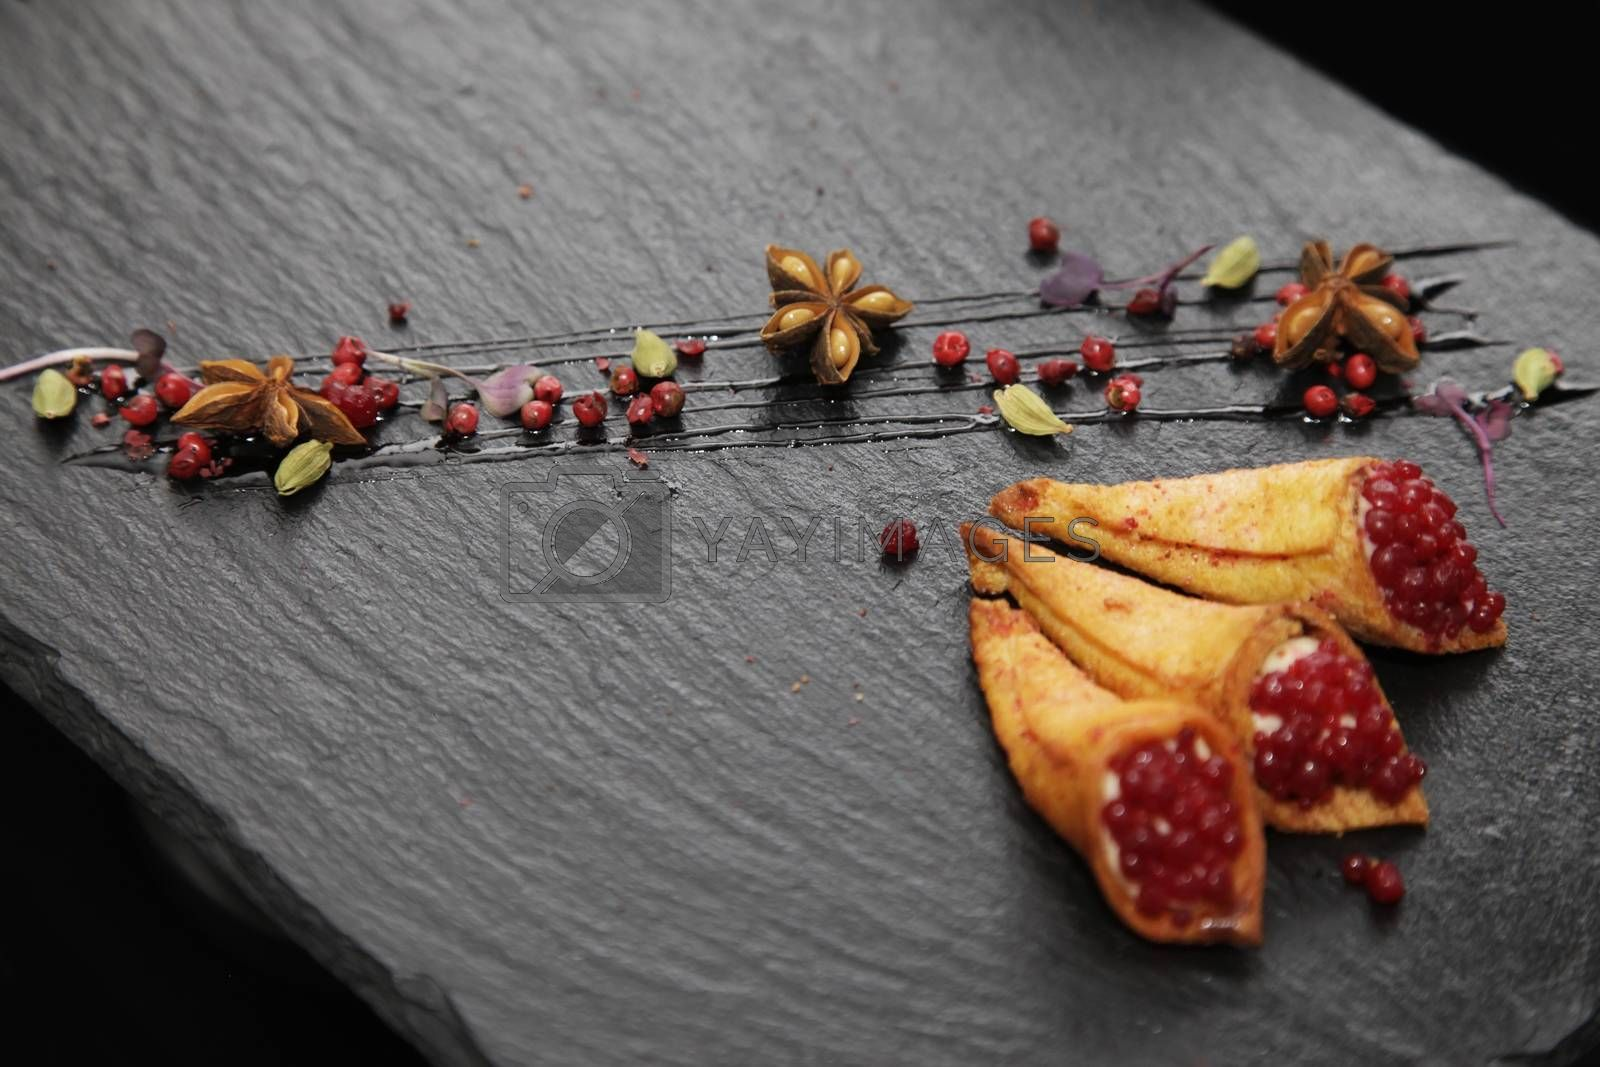 Rabbit pate in crispy horns decorated with spices on a black stone plate